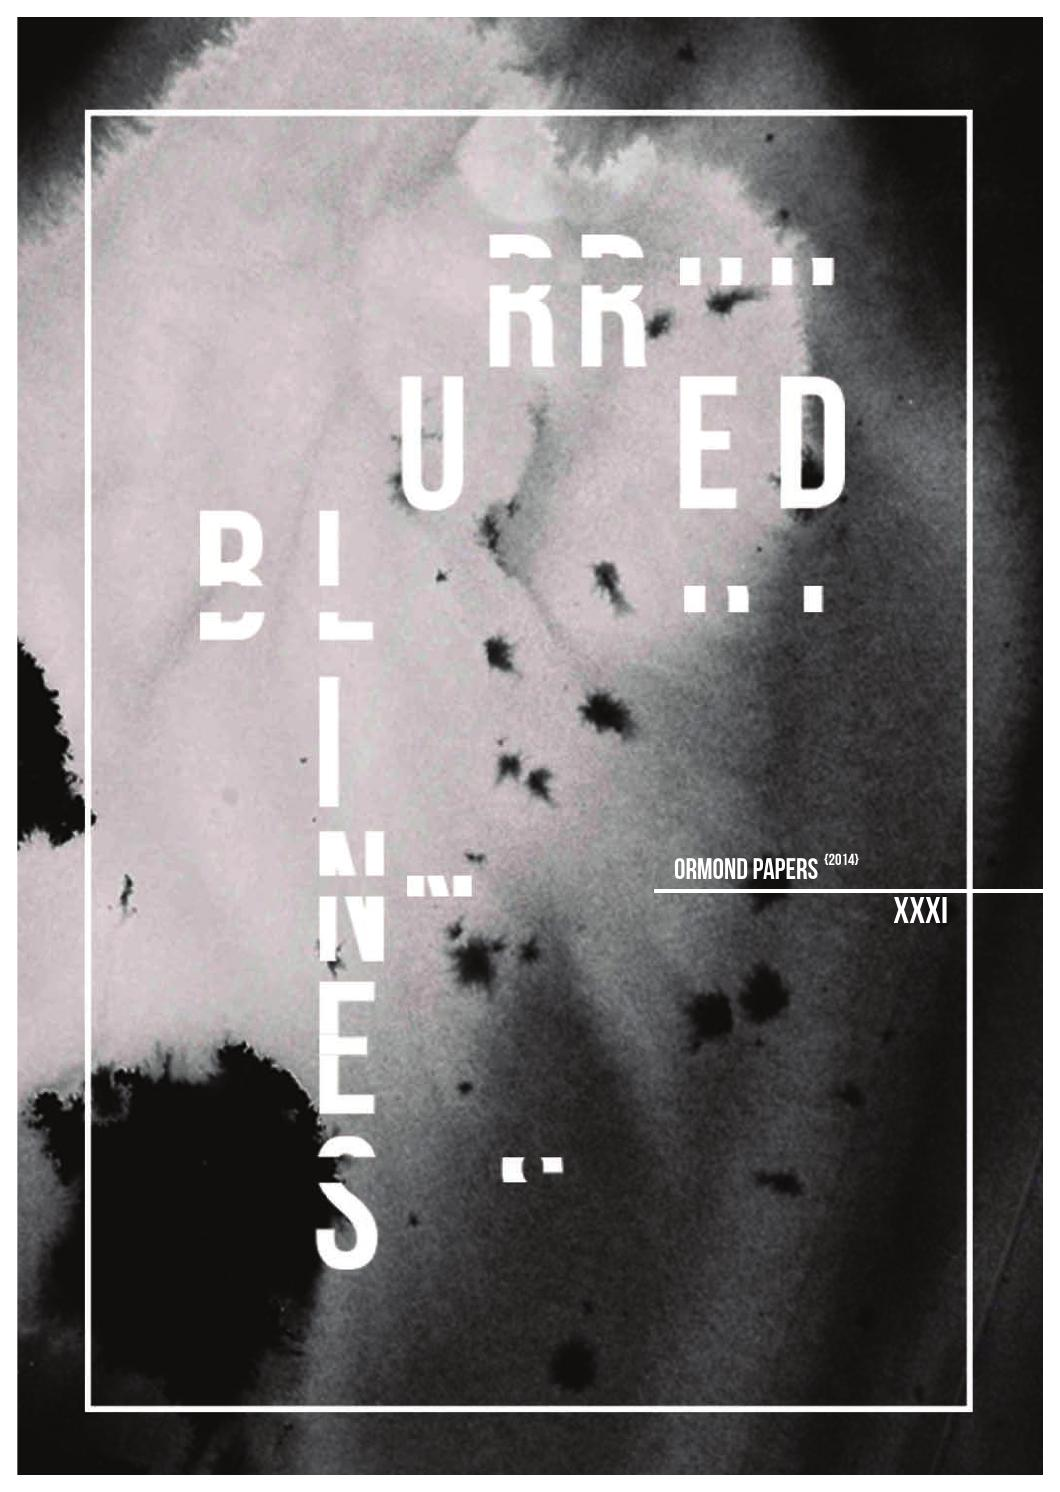 2014 Ormond Papers Blurred Lines By College Issuu Sonic 150r Aggresso Matte Black Klaten